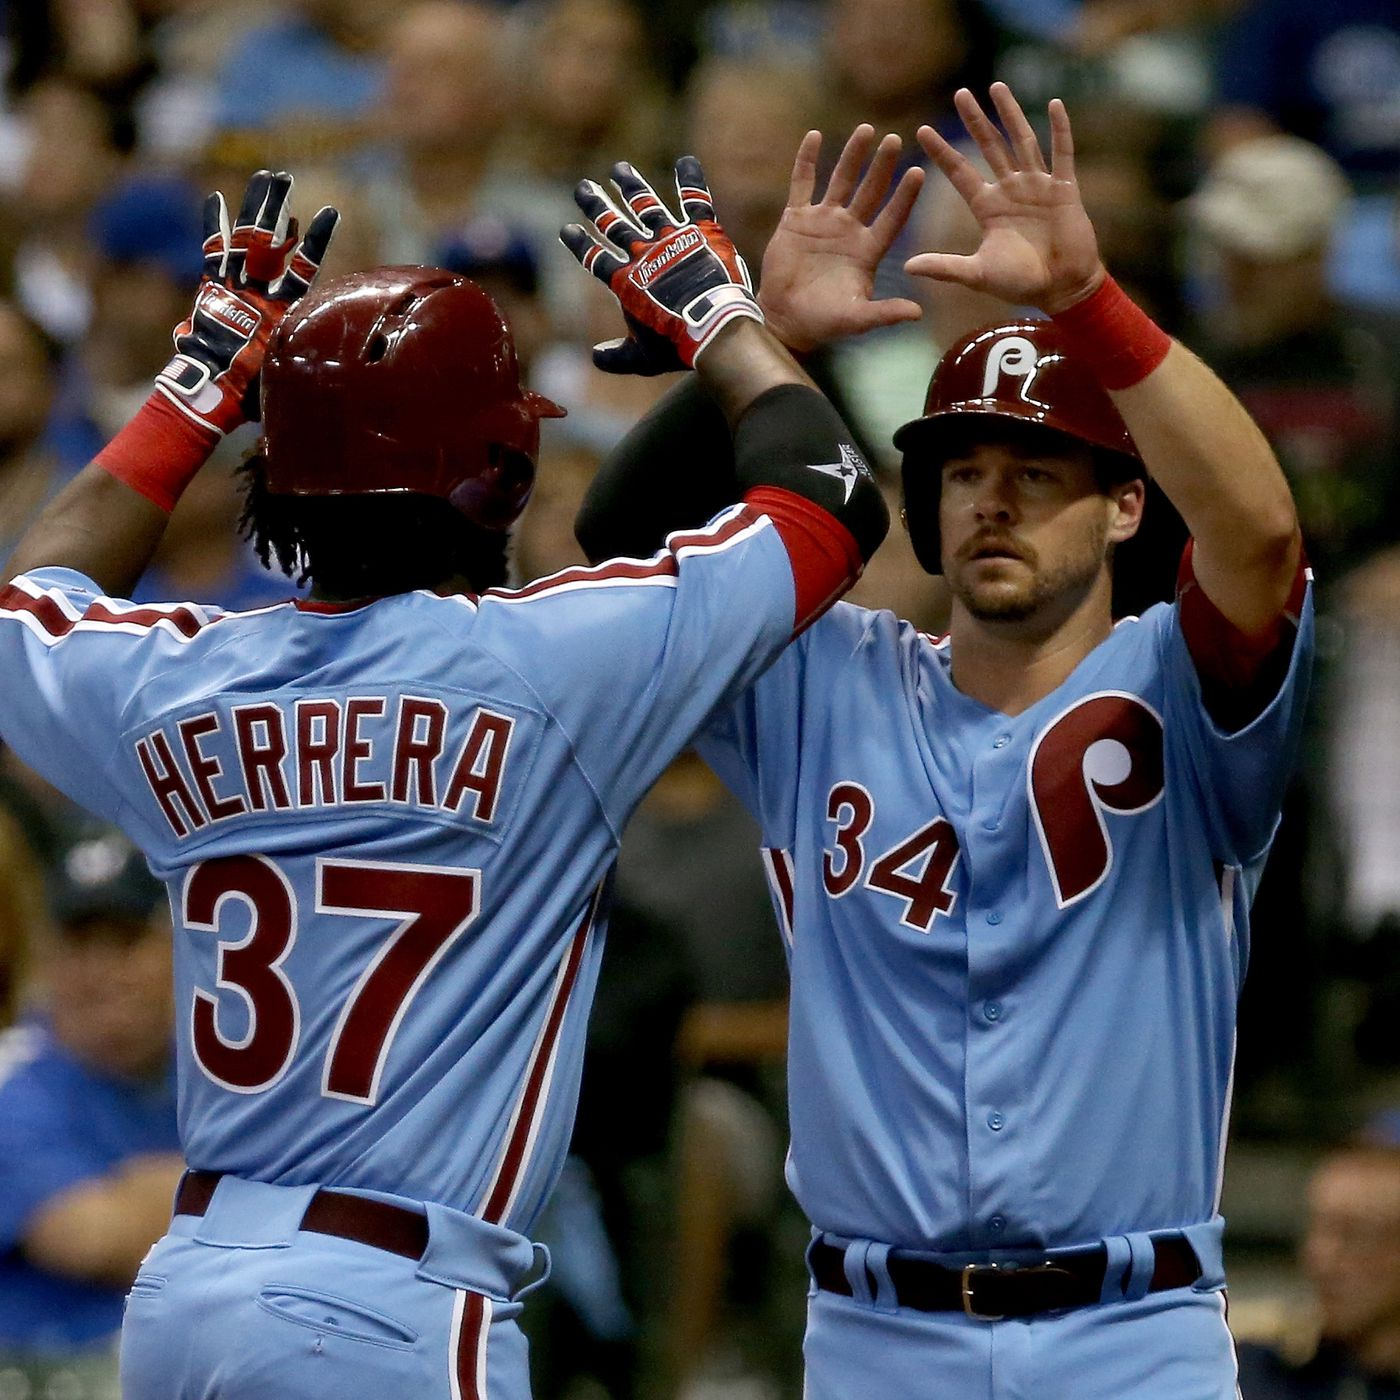 hot sale online edd3d 95904 Phillies to wear powder blue jerseys in 2018 - The Good Phight